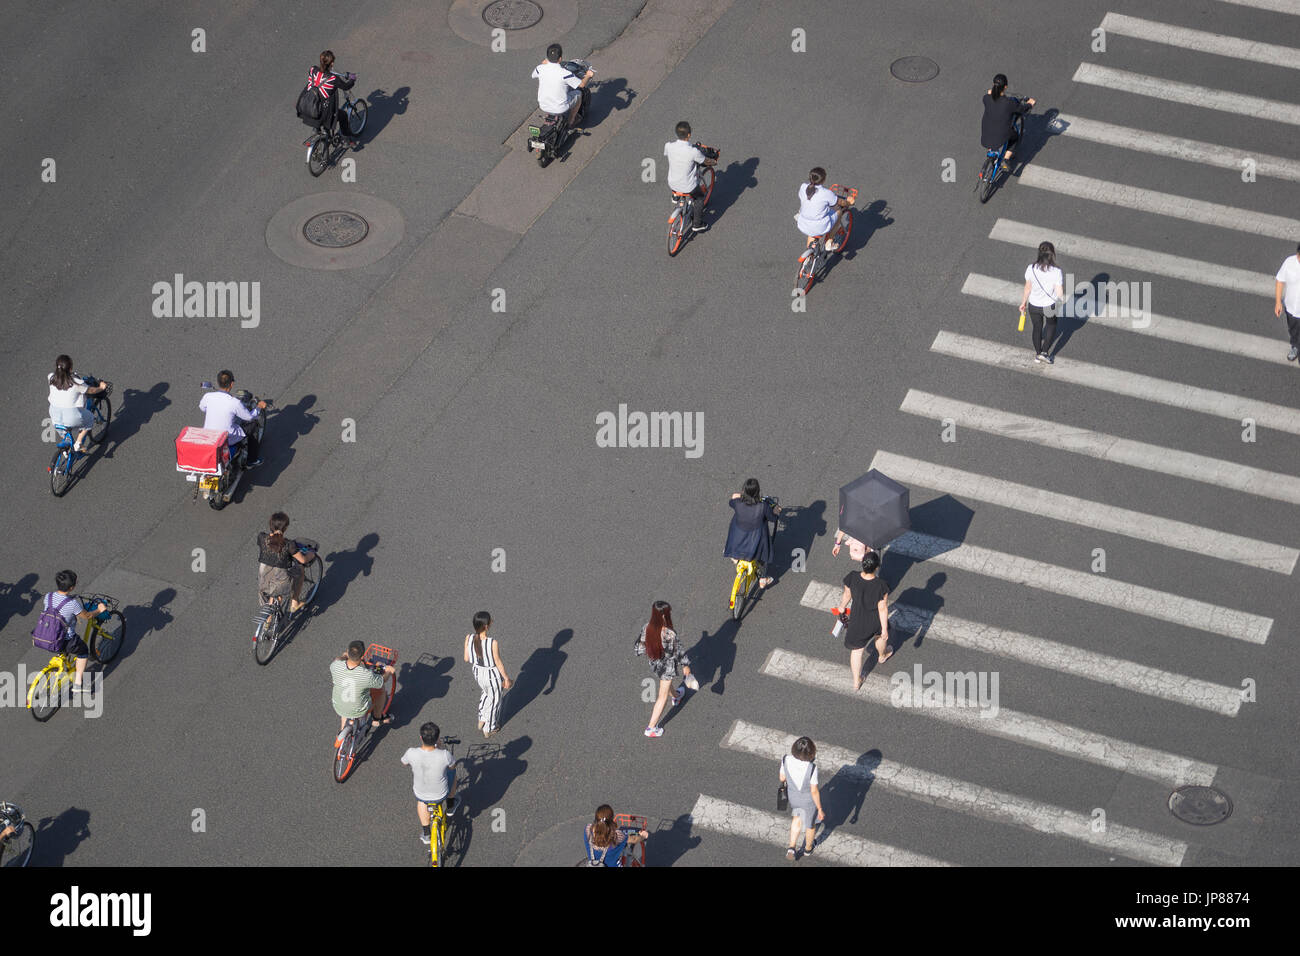 Pedestrians, cyclists and moped crossing street across a crosswalk while taxis wait walking across a wide city street with crosswalk - Stock Image